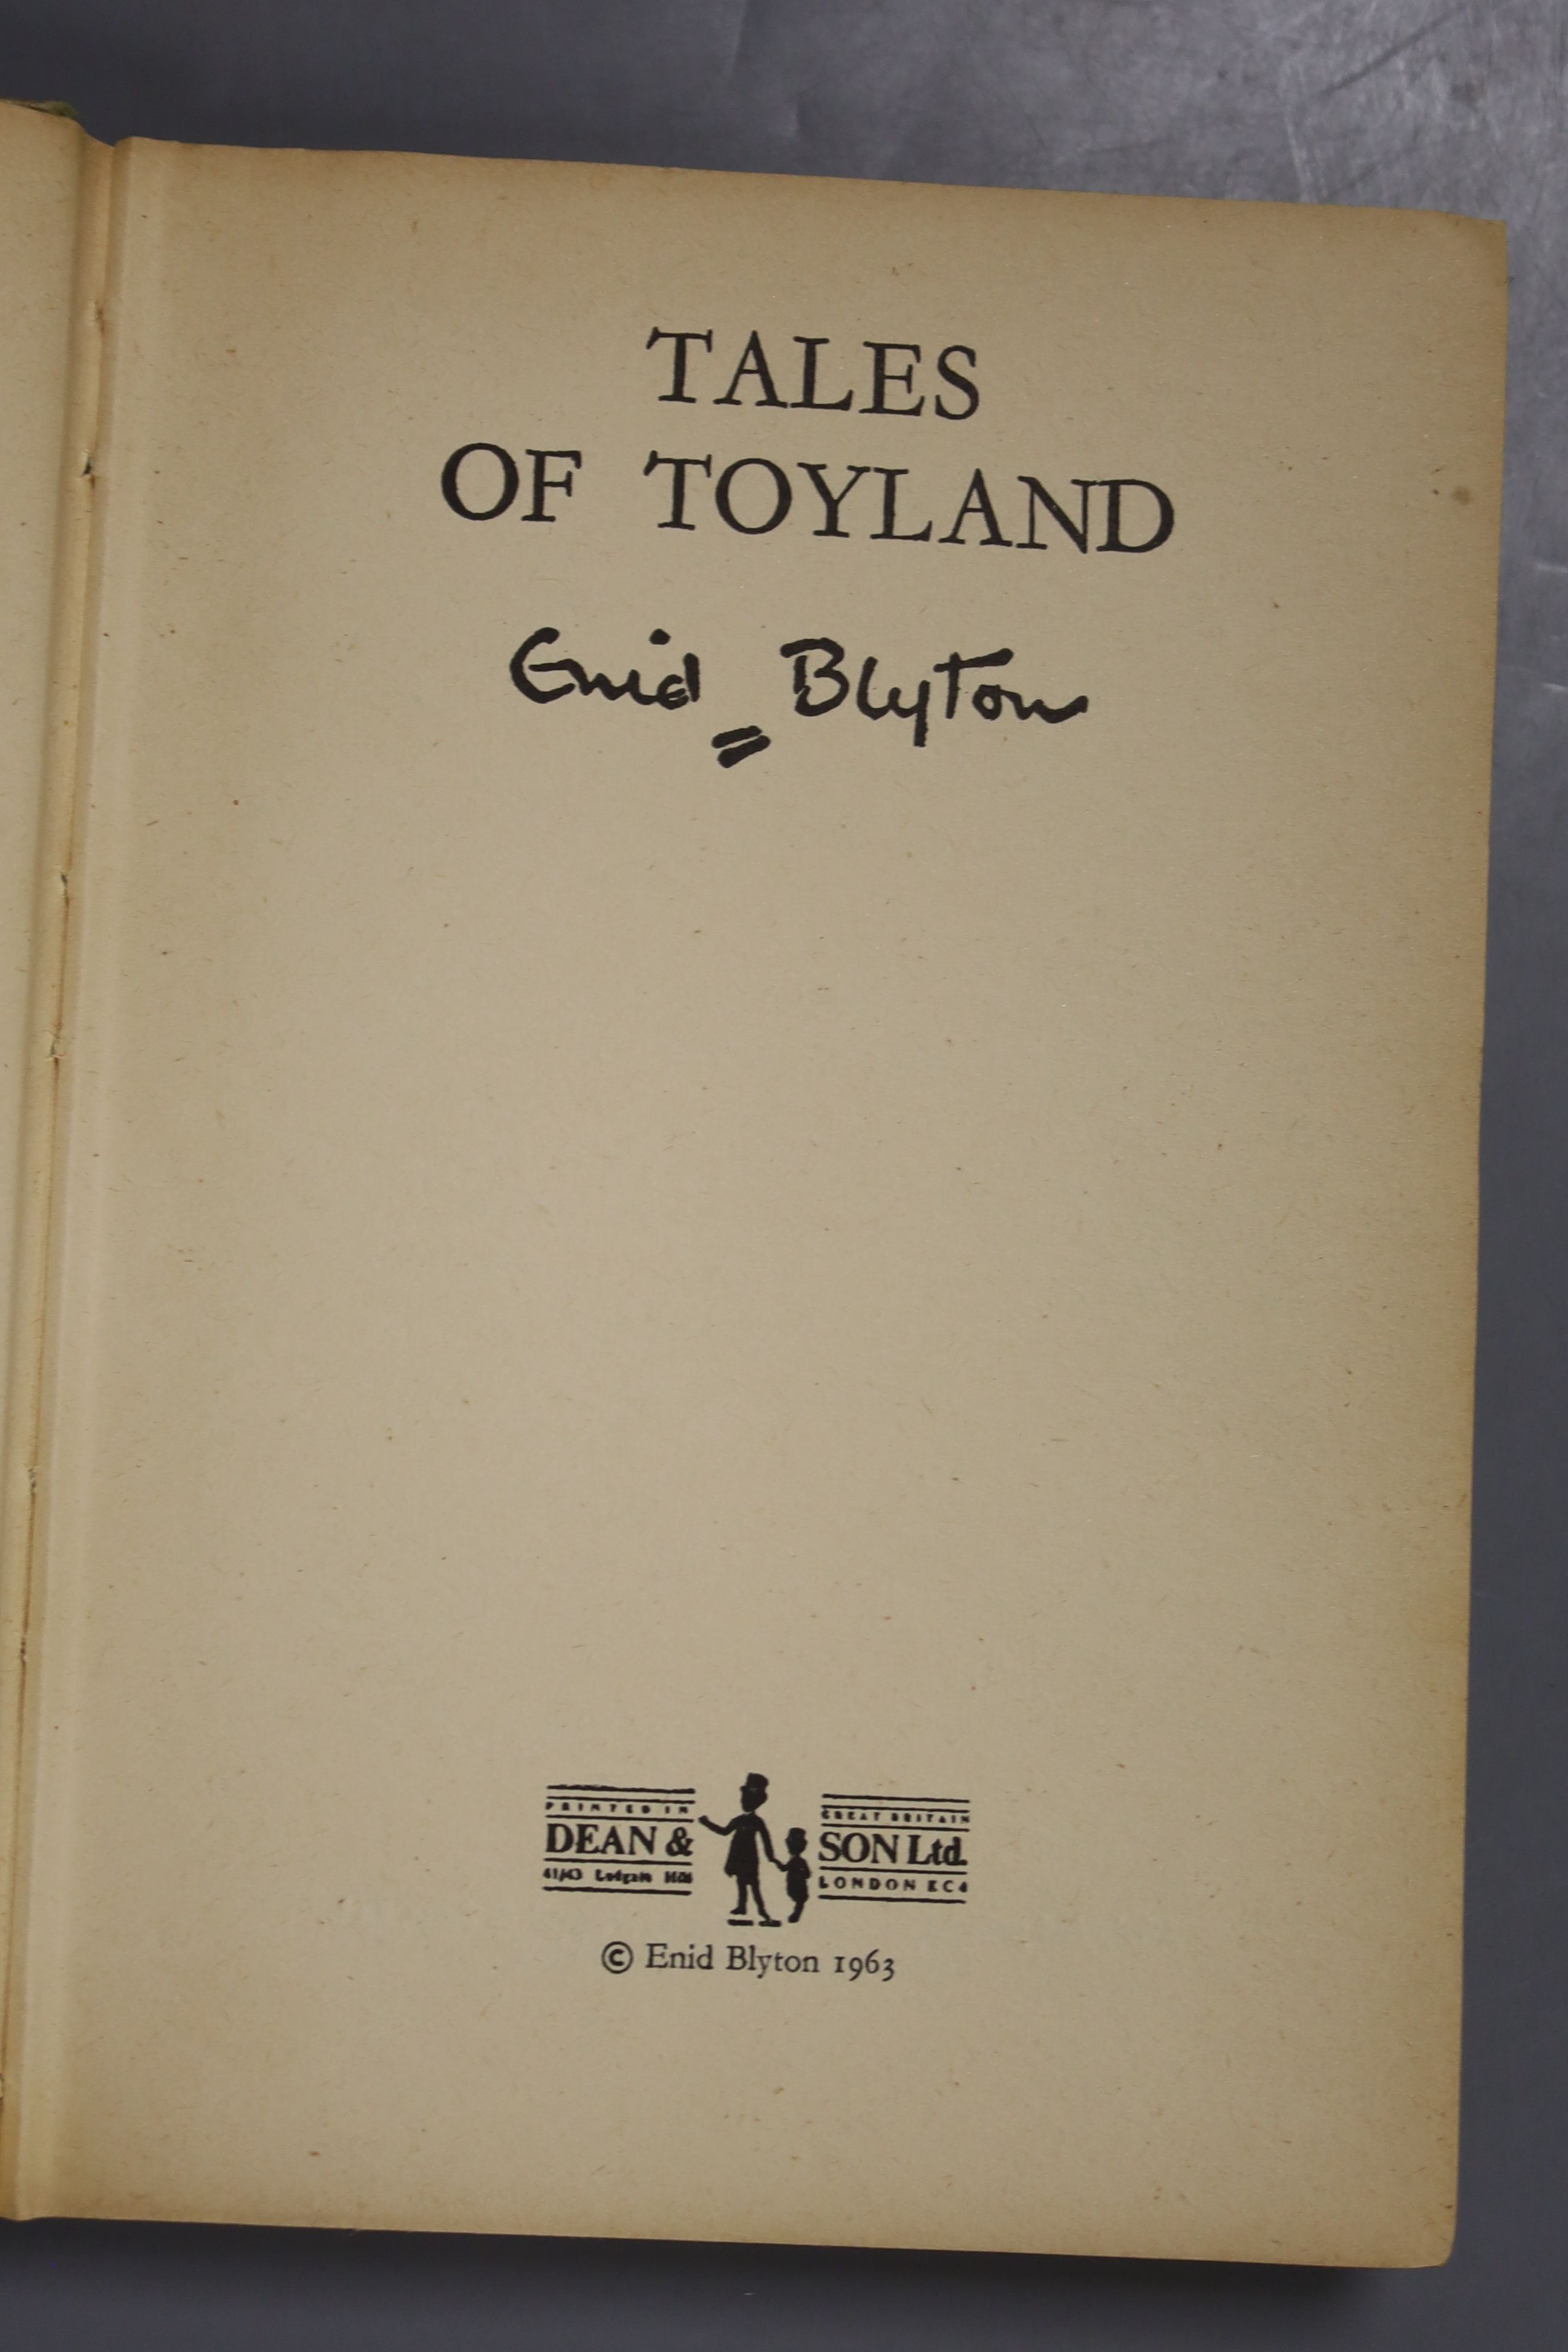 Johns, Capt W.W – Biggles In Australia, first edition, 16mo, hardback, (dj missing, spine sunned) - Image 8 of 10